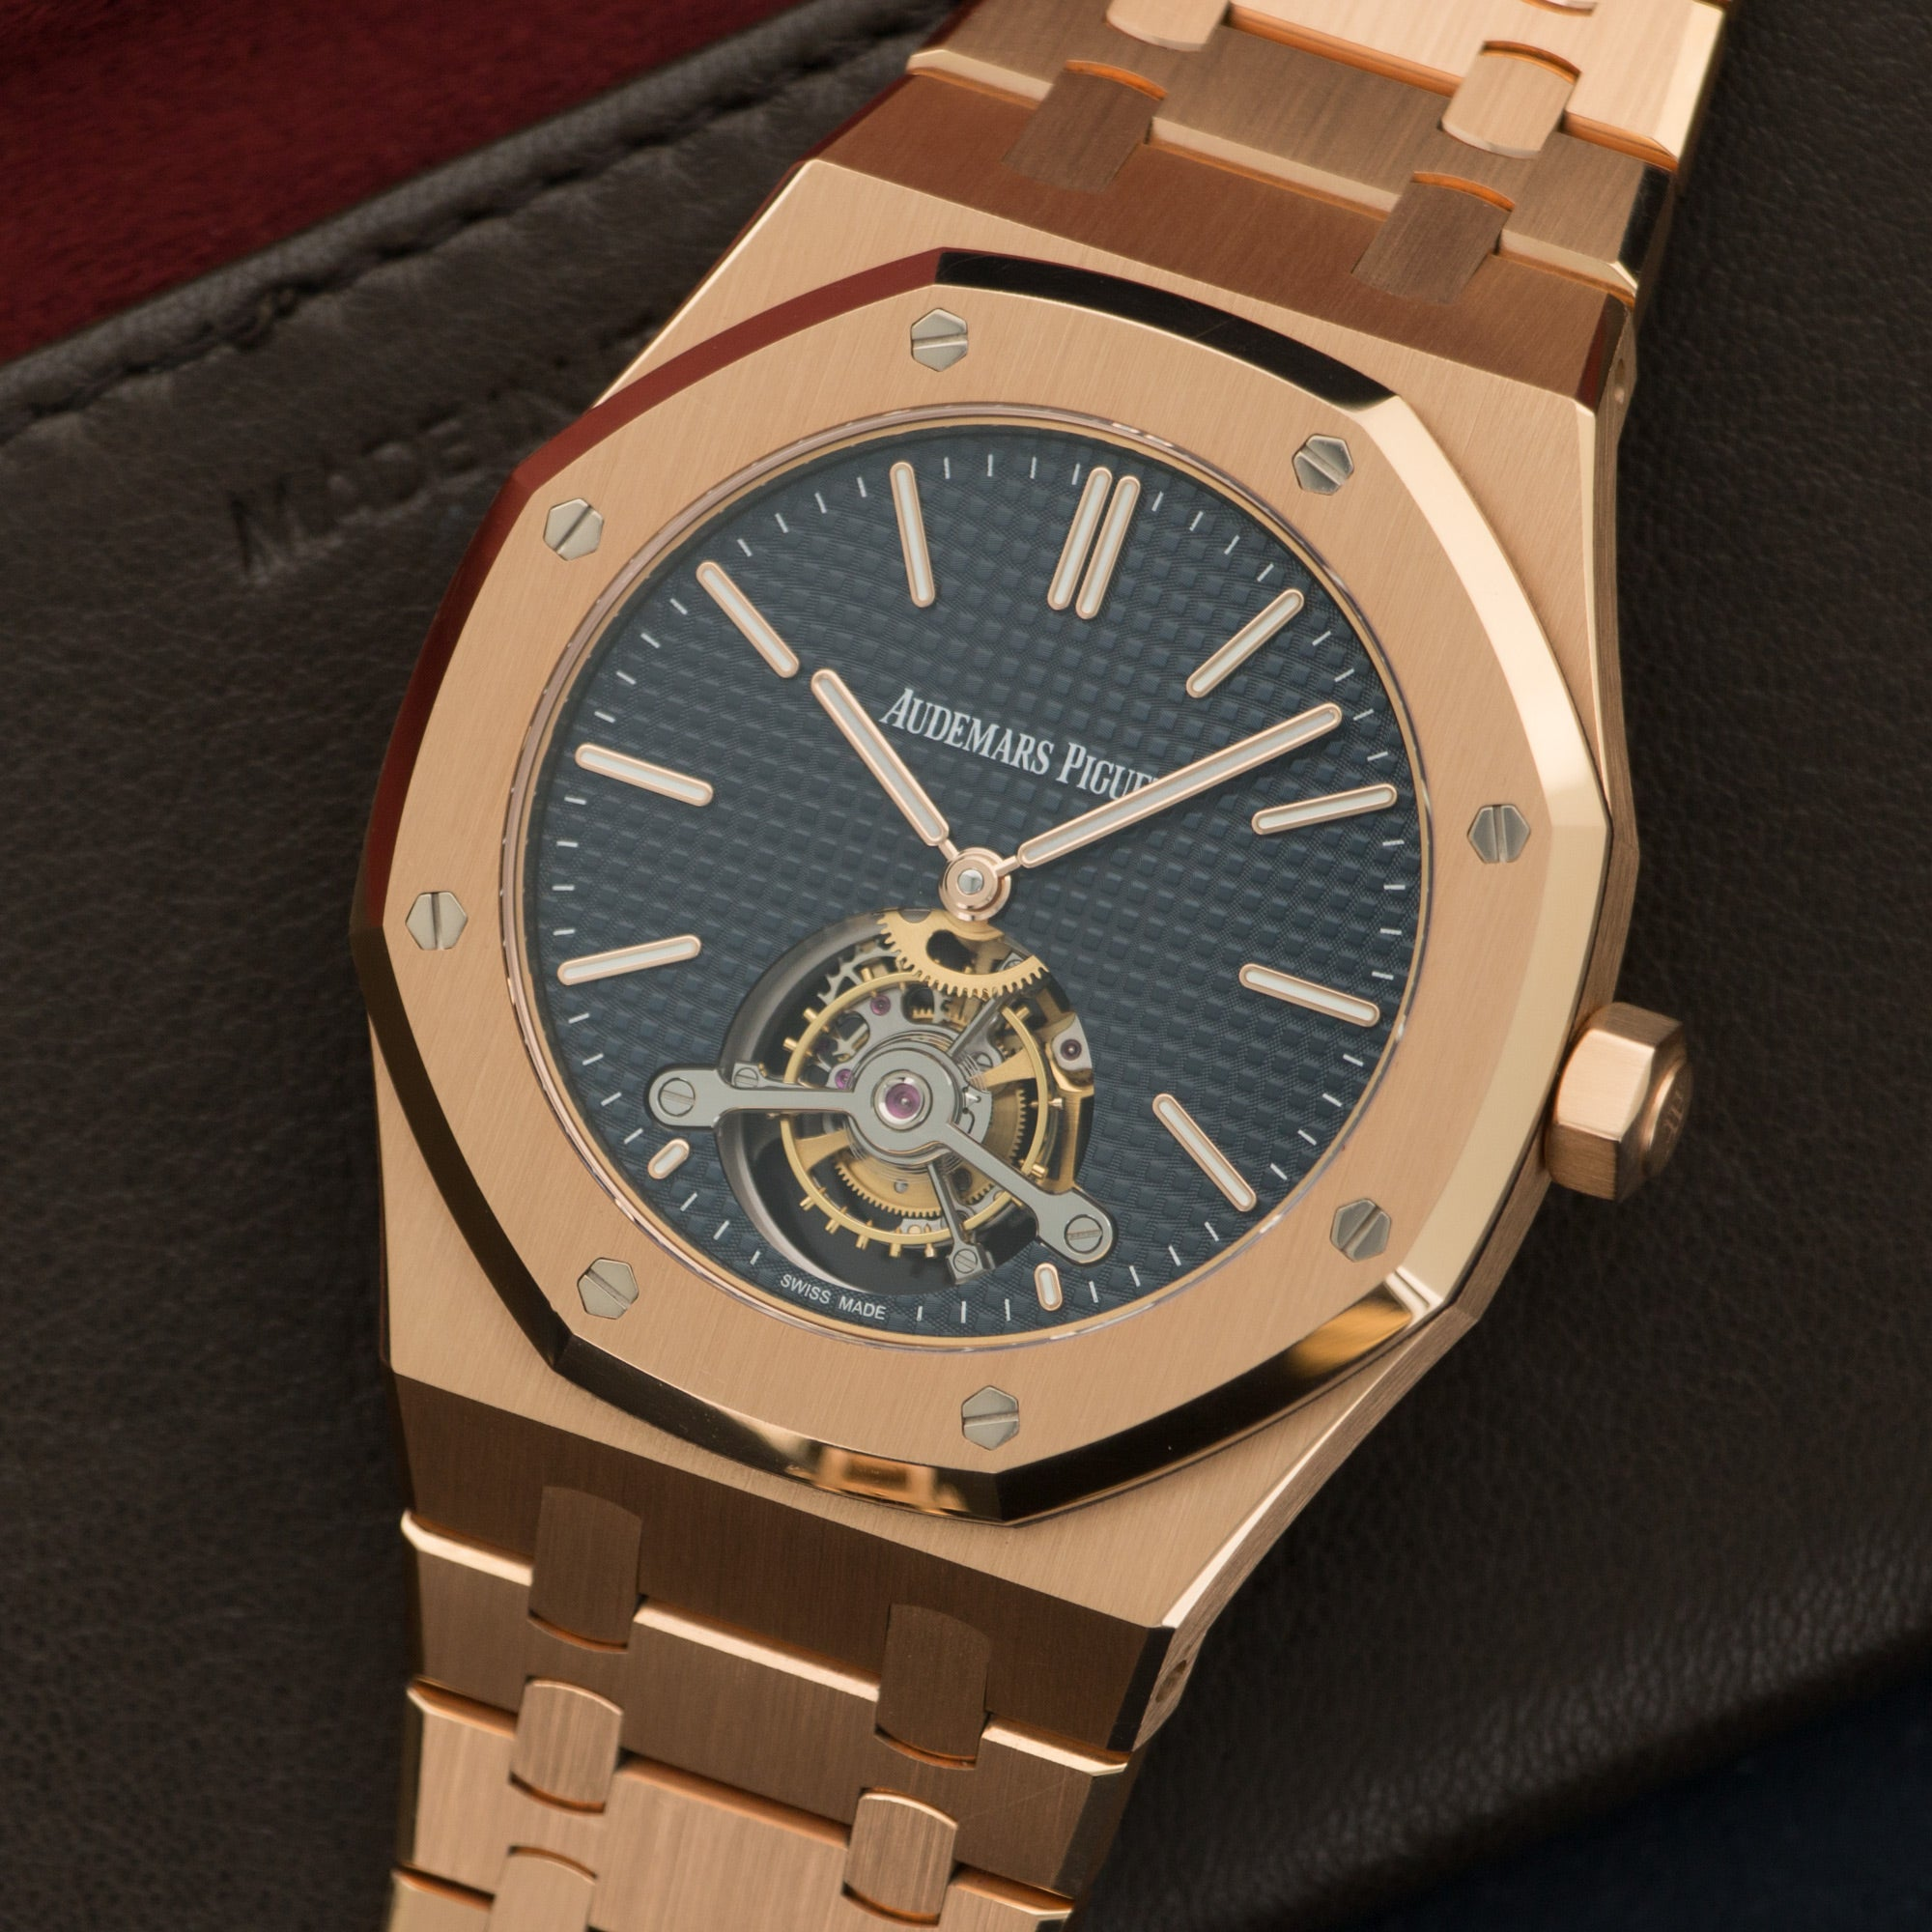 Audemars Piguet Royal Oak 26510OR.OO.1220OR.01 18k RG  Like New, Worn a Few Times Gents 18k RG Dark Blue 41mm Manual 2016 Rose Gold Original Box and Certificate